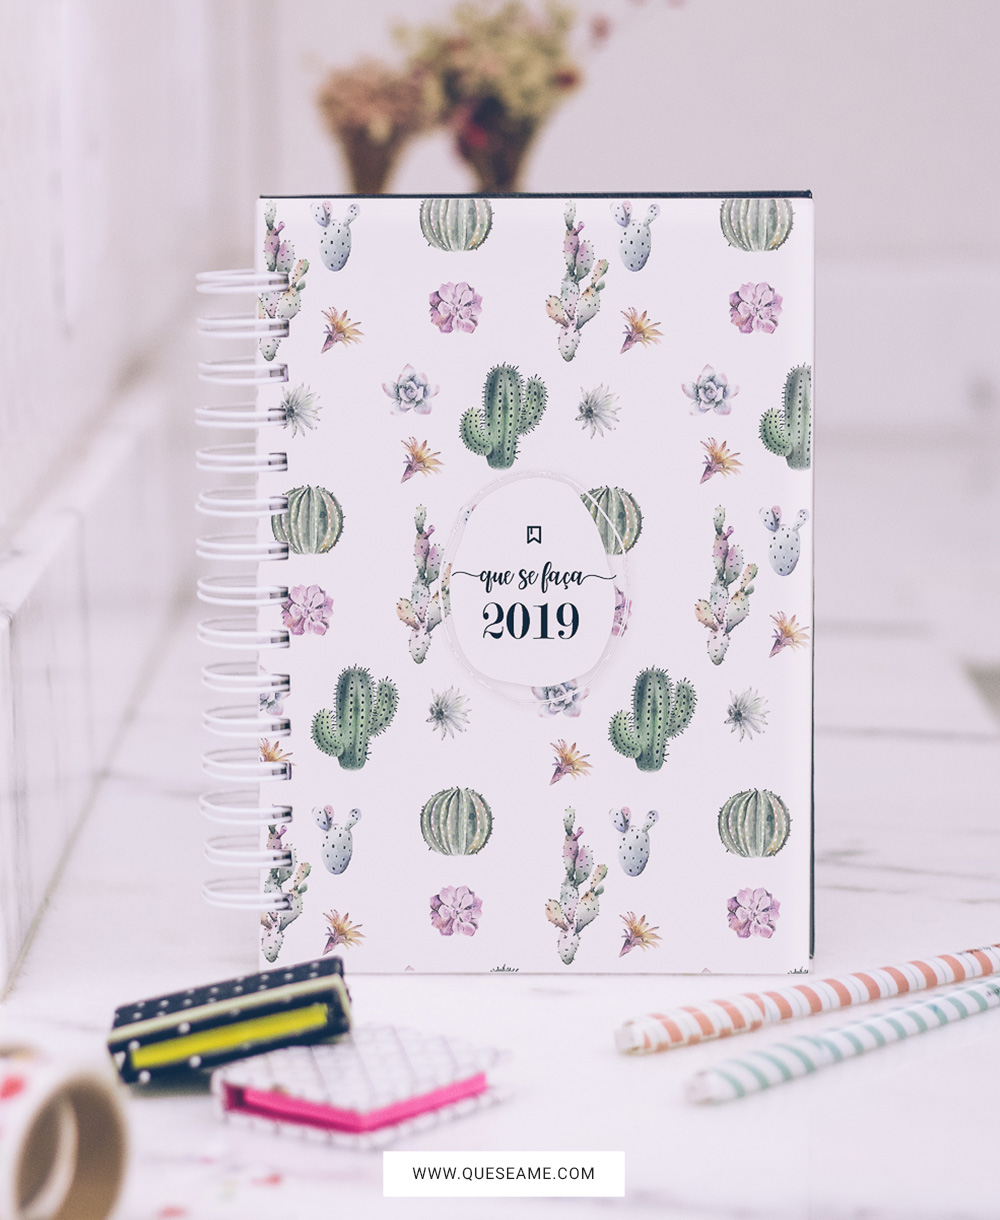 planner, planner 2019, planner 2019 para download, planner 2019 para baixar, 2019 planner calendar, agenda 2019, planner anual, planner 2018, planner 2018 para download, planner 2018 para baixar, journey planner, trip planner, planner 2017, 2017 planner calendar, calendar planner, calendar, 2017 calendar, 2018 calendar, 2018 planner calendar, planner for 2018, year planner 2018, 2018 printable planner, printable planner, 2018 calendar, 2018 planners, 2018 monthly planner, planners, agenda 2018, happy planner 2018, 2018 agenda planner, happy planner, travel planner, daily planner, weekly planner, monthly planner, planning, daily planner agenda, agenda planner, daily planner printable, week planner, printable planner, free printable planner, personal planner, travel planner, trip planner, free planner, best personal planner, caderno pontilhado, caderno pontilhado comprar, planner case, , planner para baixar, download planner, agendas, agenda online, life planner, agenda online gratis, calendario mensal, planners, agenda planner comprar, agenda planner, planner agenda, baixar agenda